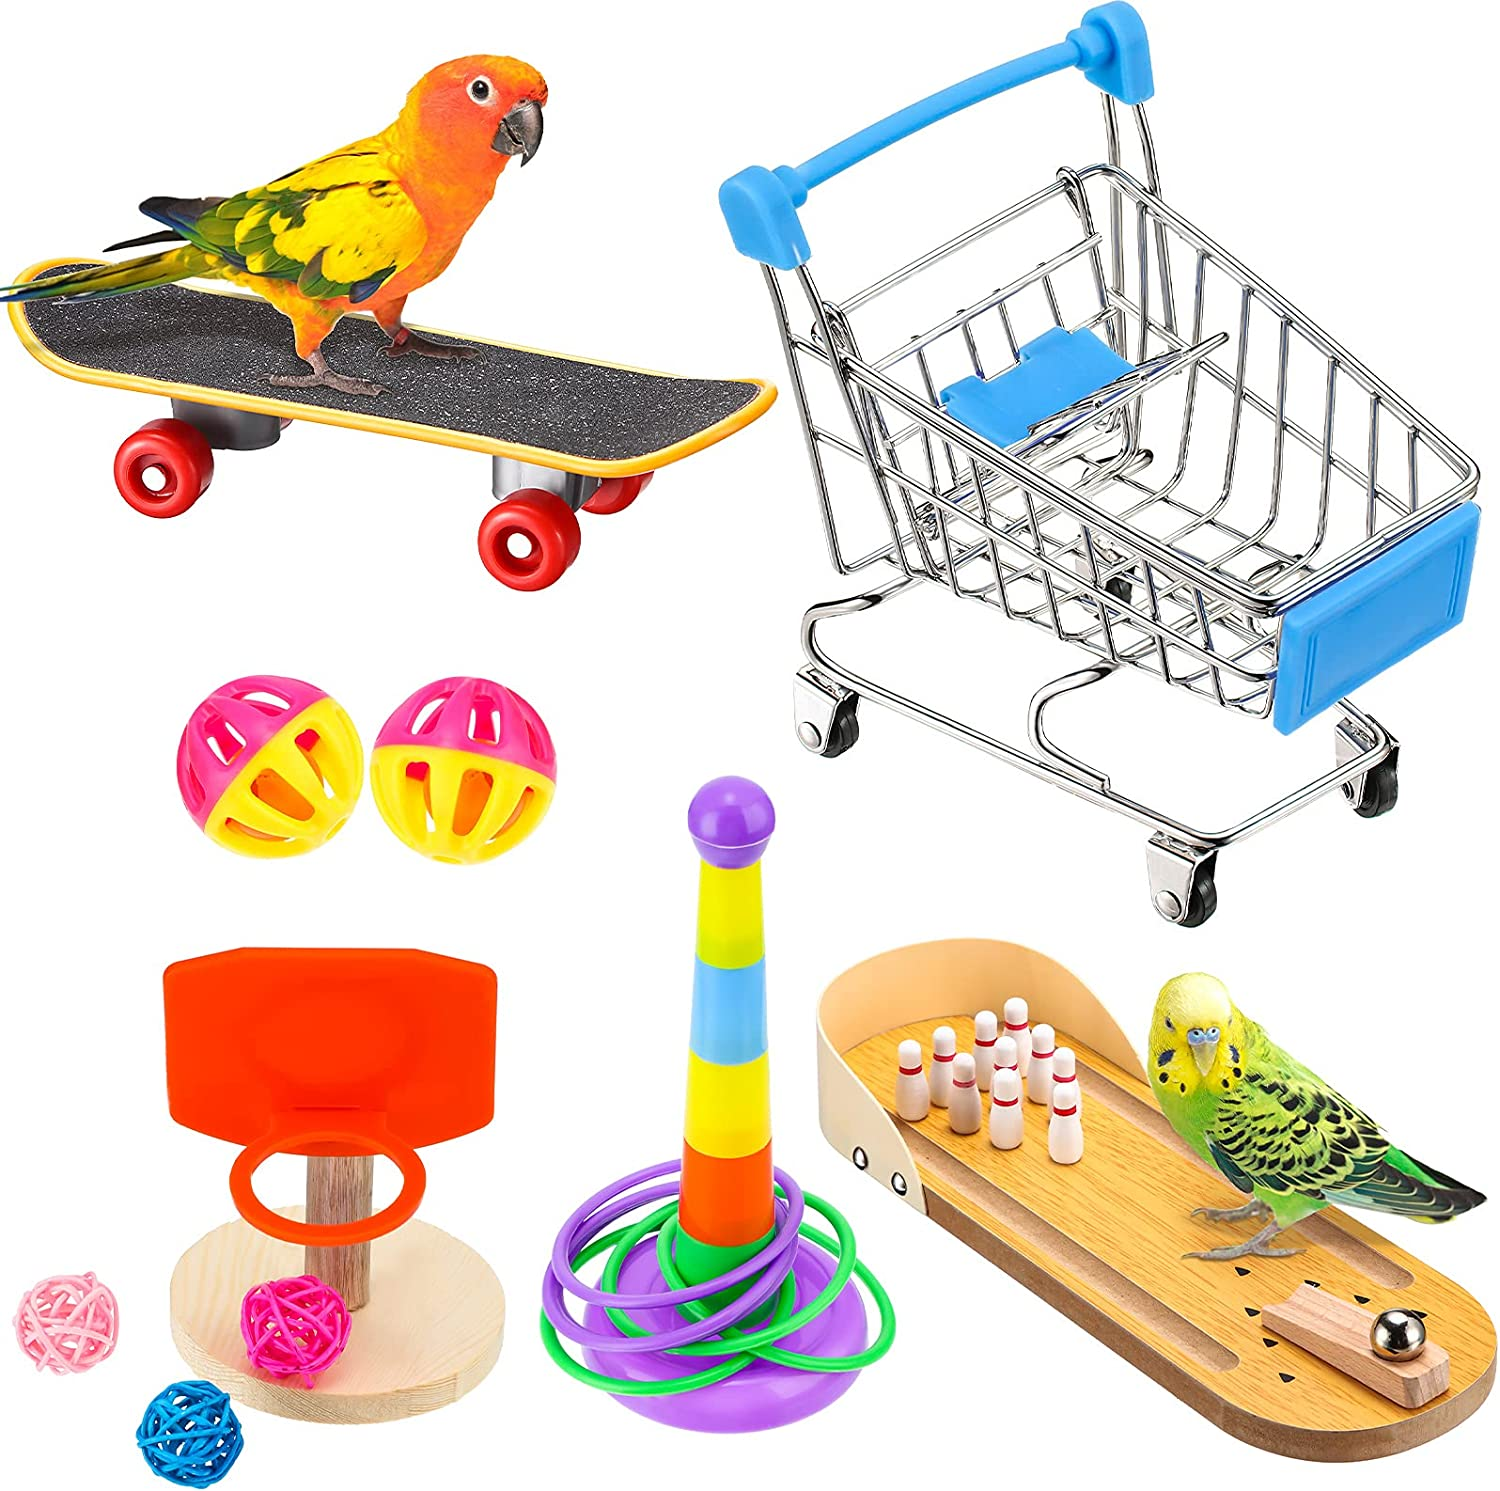 10 Pieces Bird Training Japan Japan Maker New Maker New Bowlin Toys Include Parrot